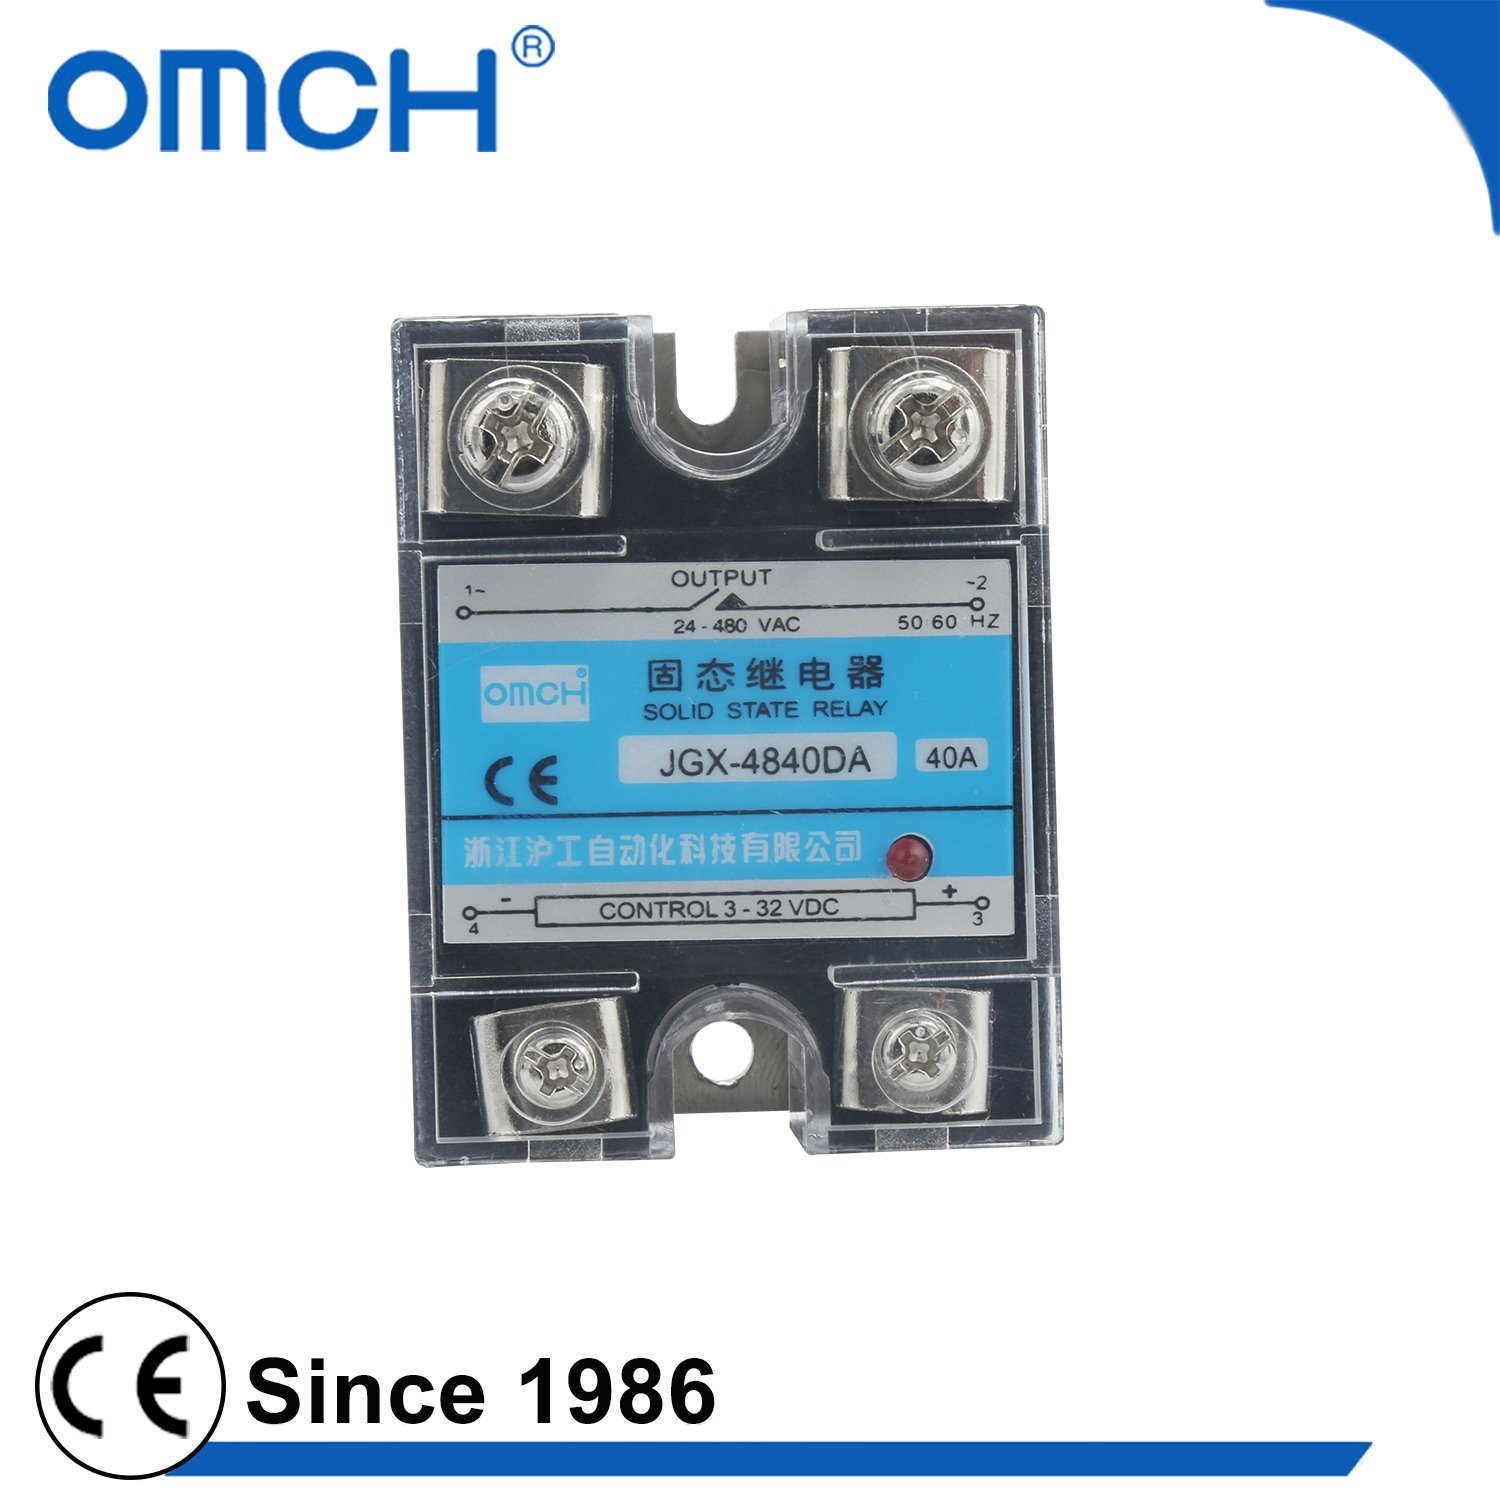 China Omch Jgx 4840da 40a Single Phase Voltage Regulate Solid State Relay Dc Ssr